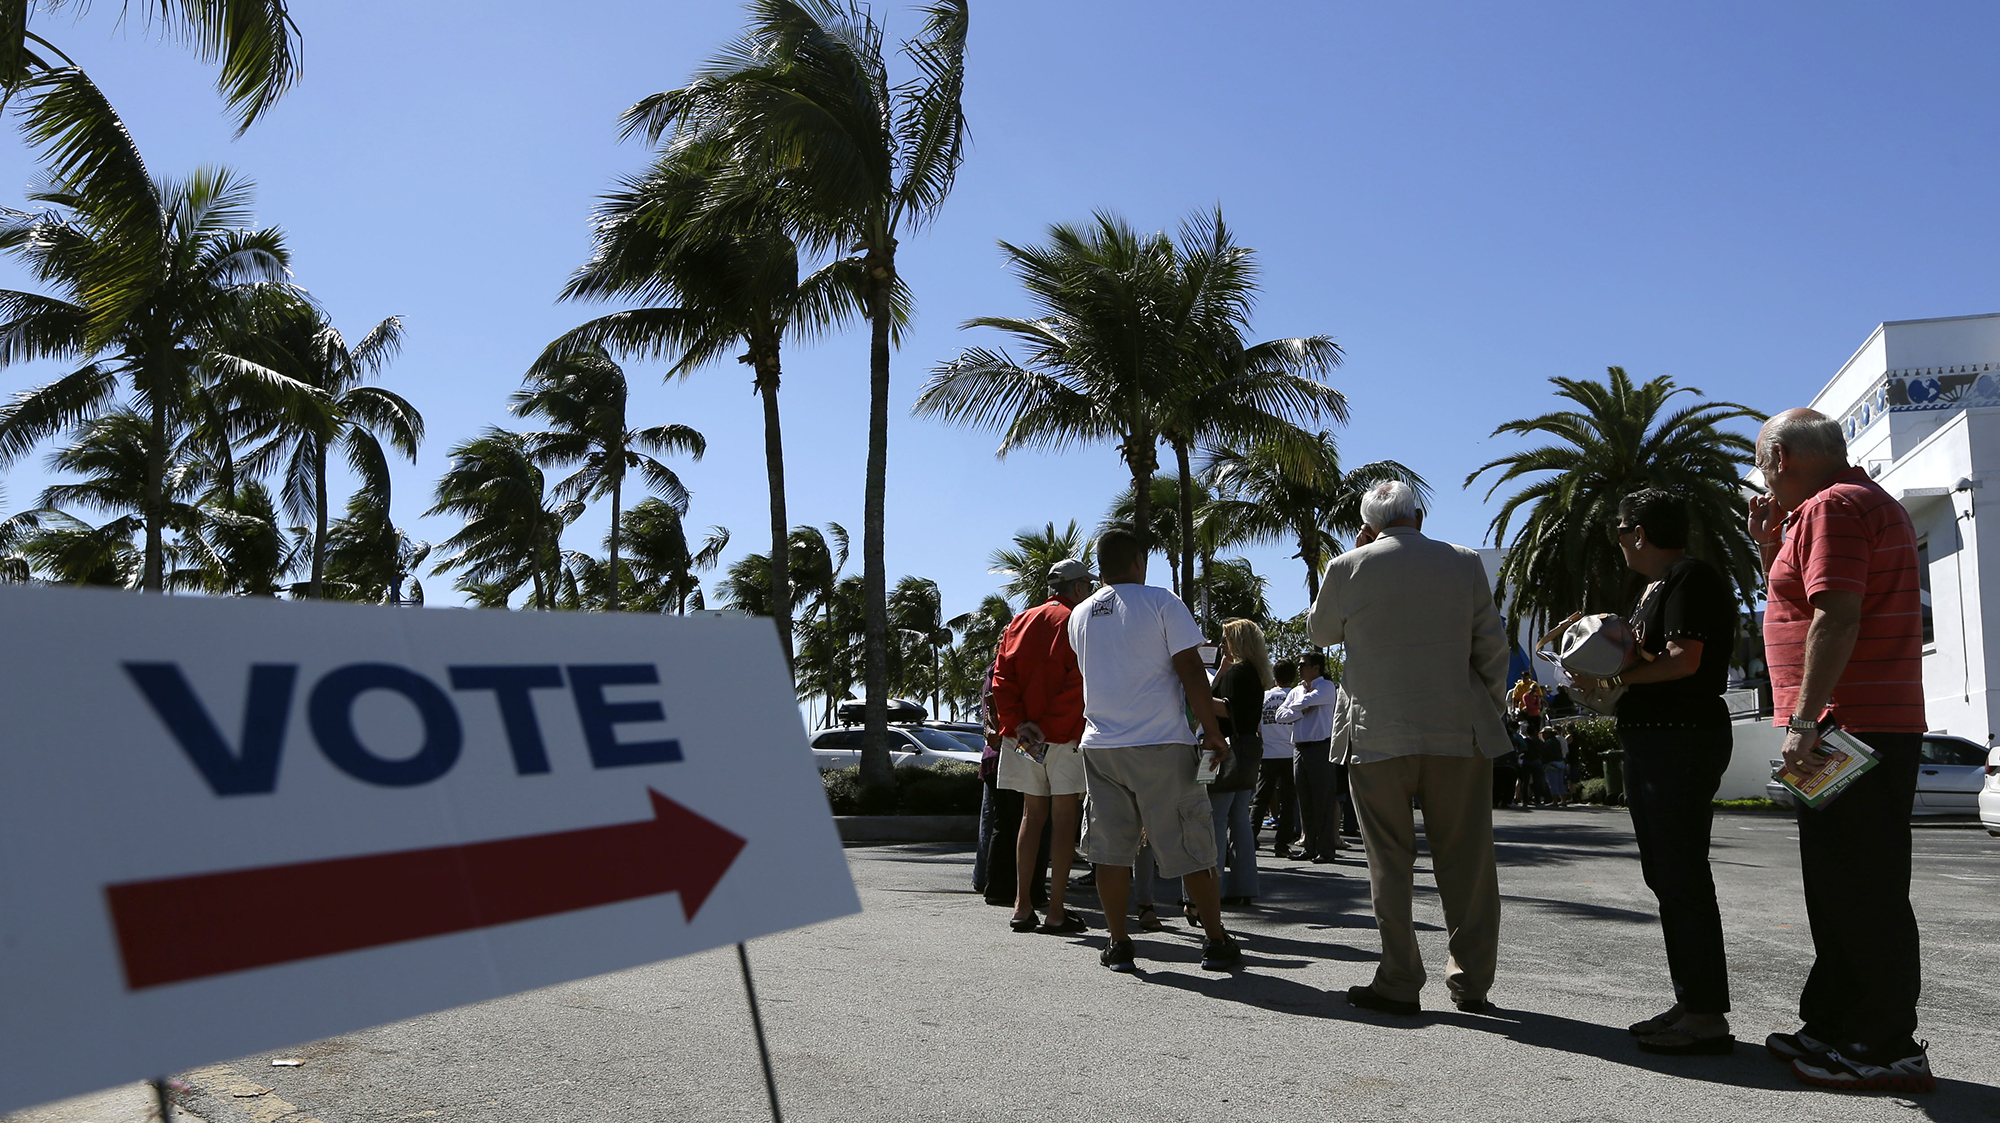 Judge calls Florida's ban on felons voting Unconstitutional